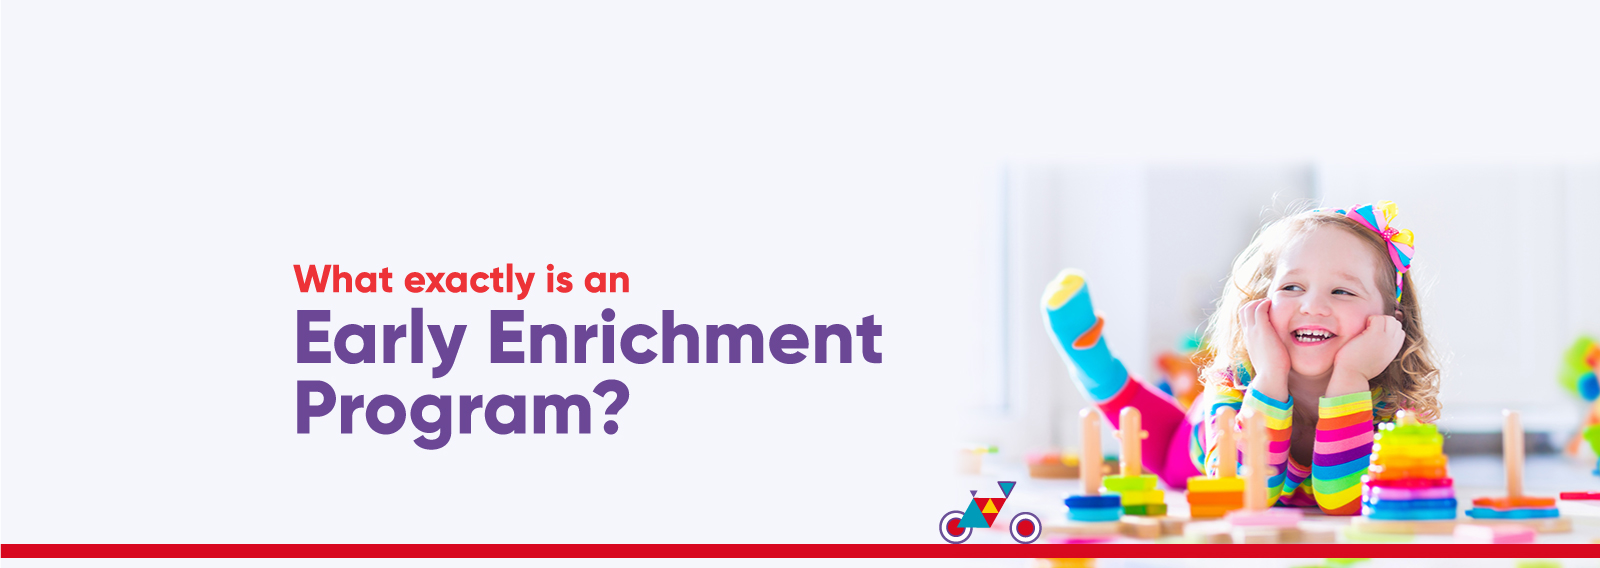 What is Early Enrichment Program?